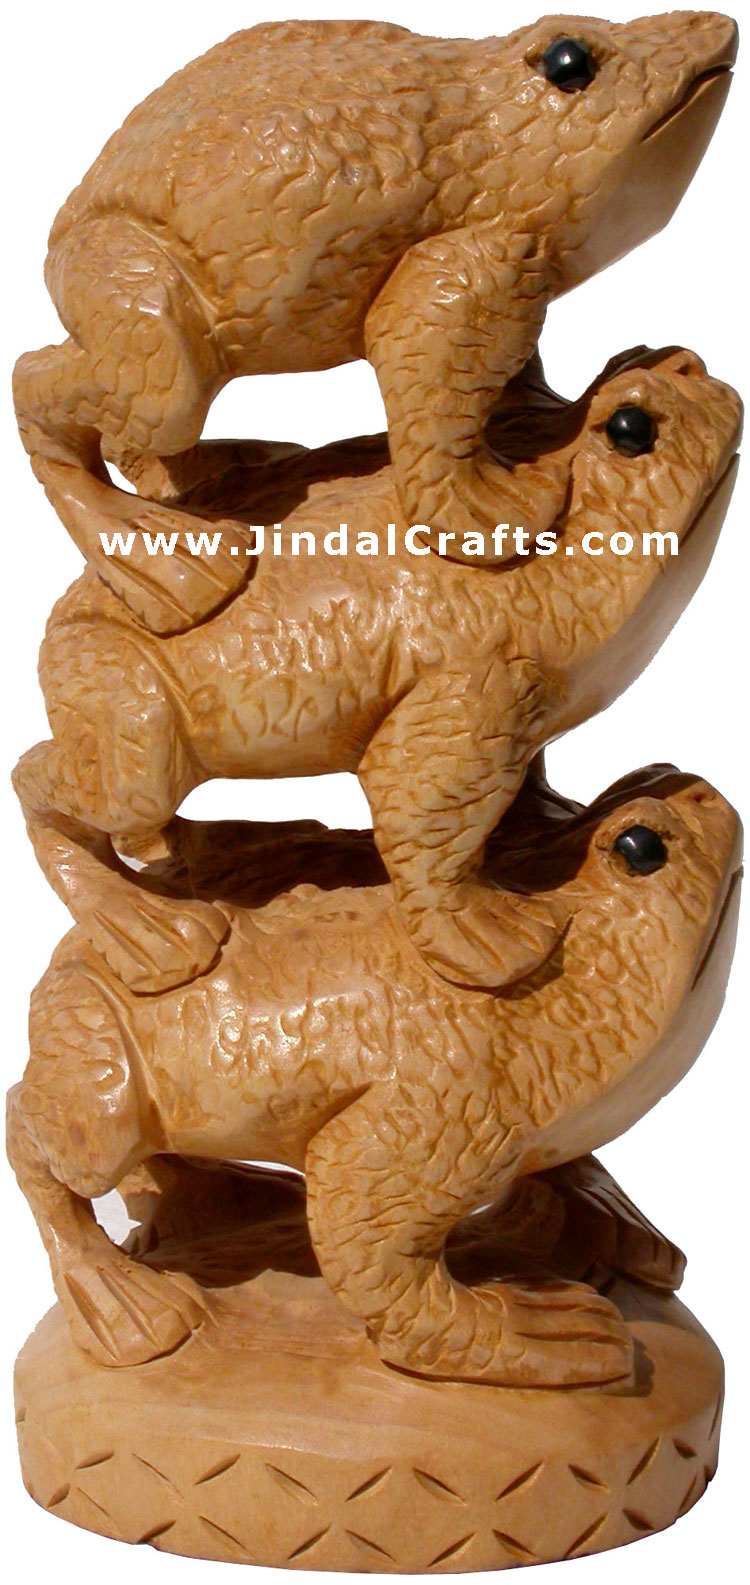 Wooden Frog Feng Shui Tower - Hand Carved Indian Artifacts Statues Lucky Idol